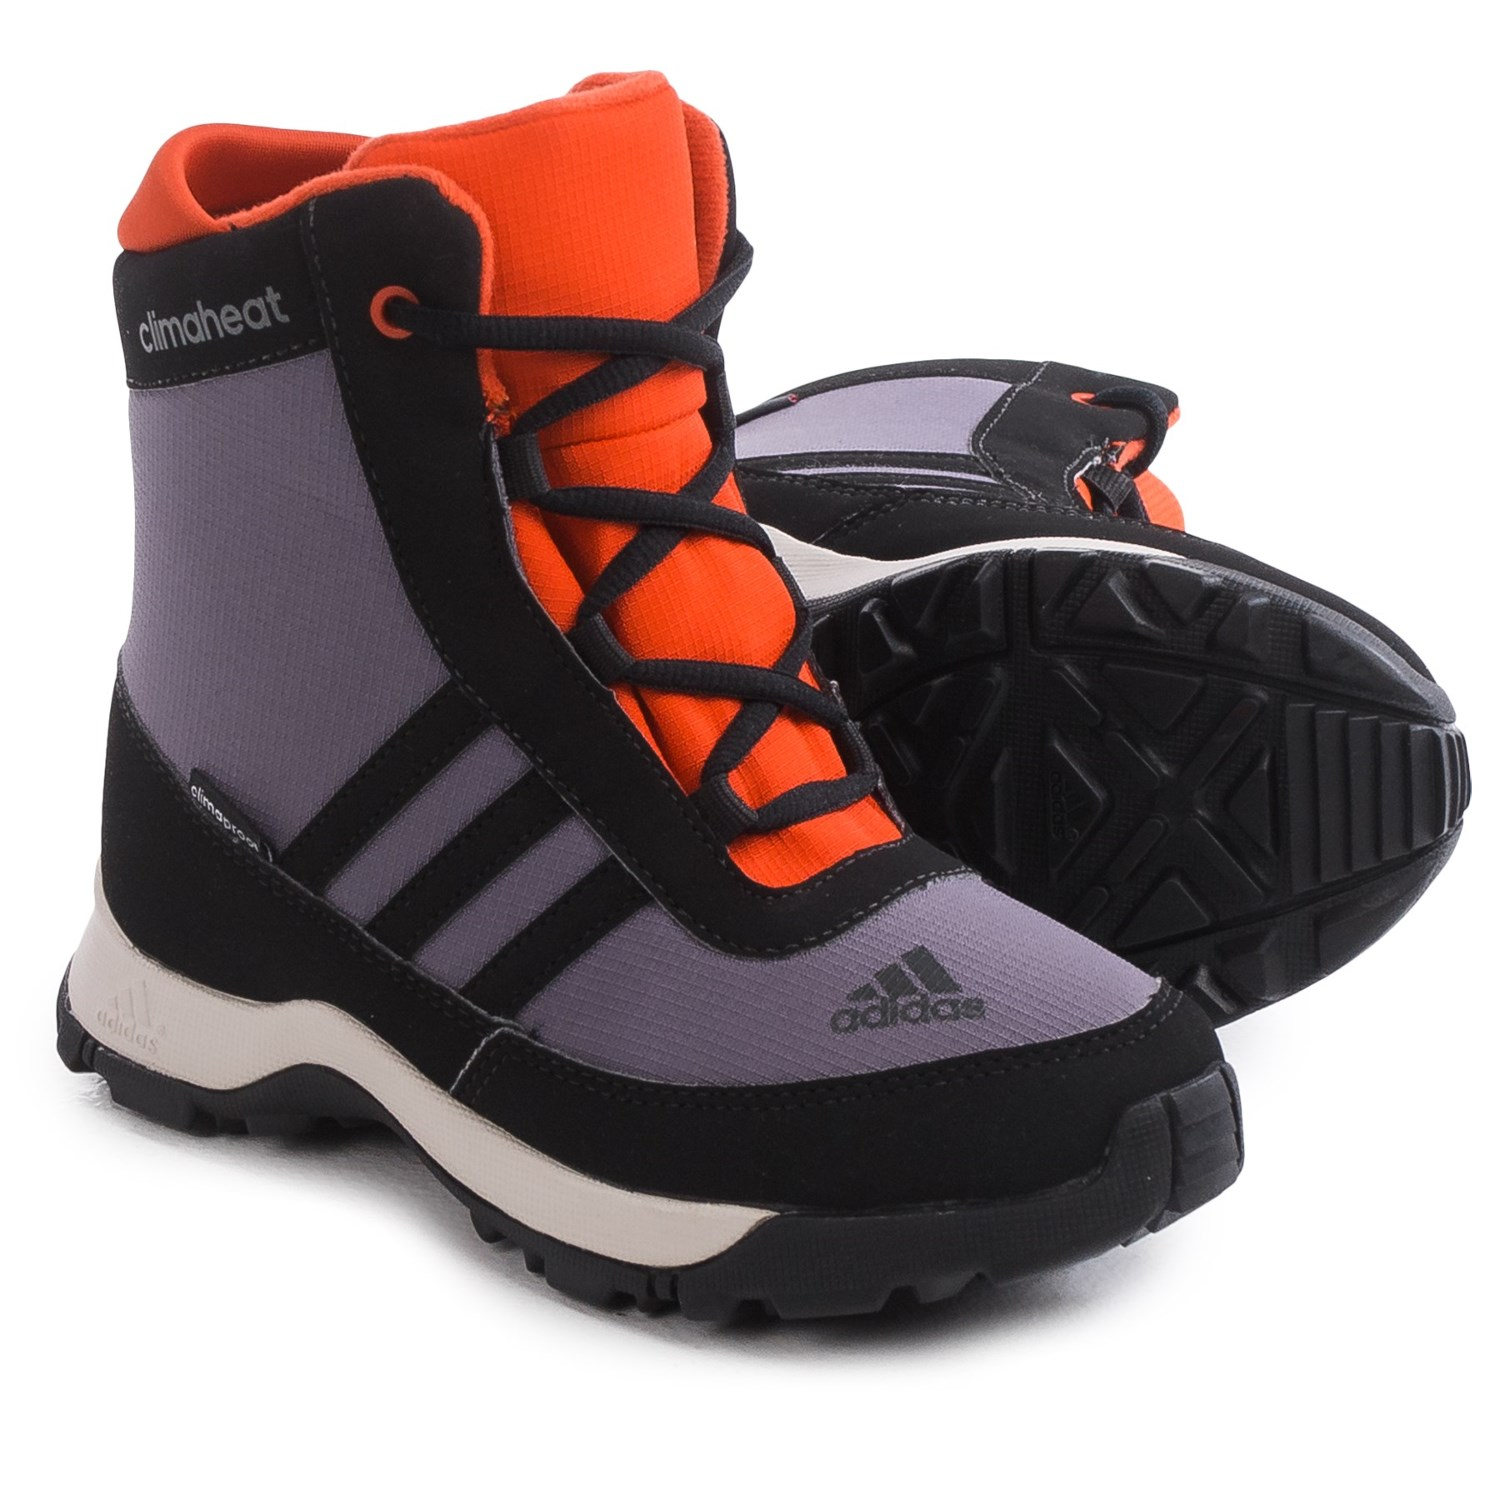 adidas Adisnow Snow Boots  Waterproof, Insulated For Little and Big